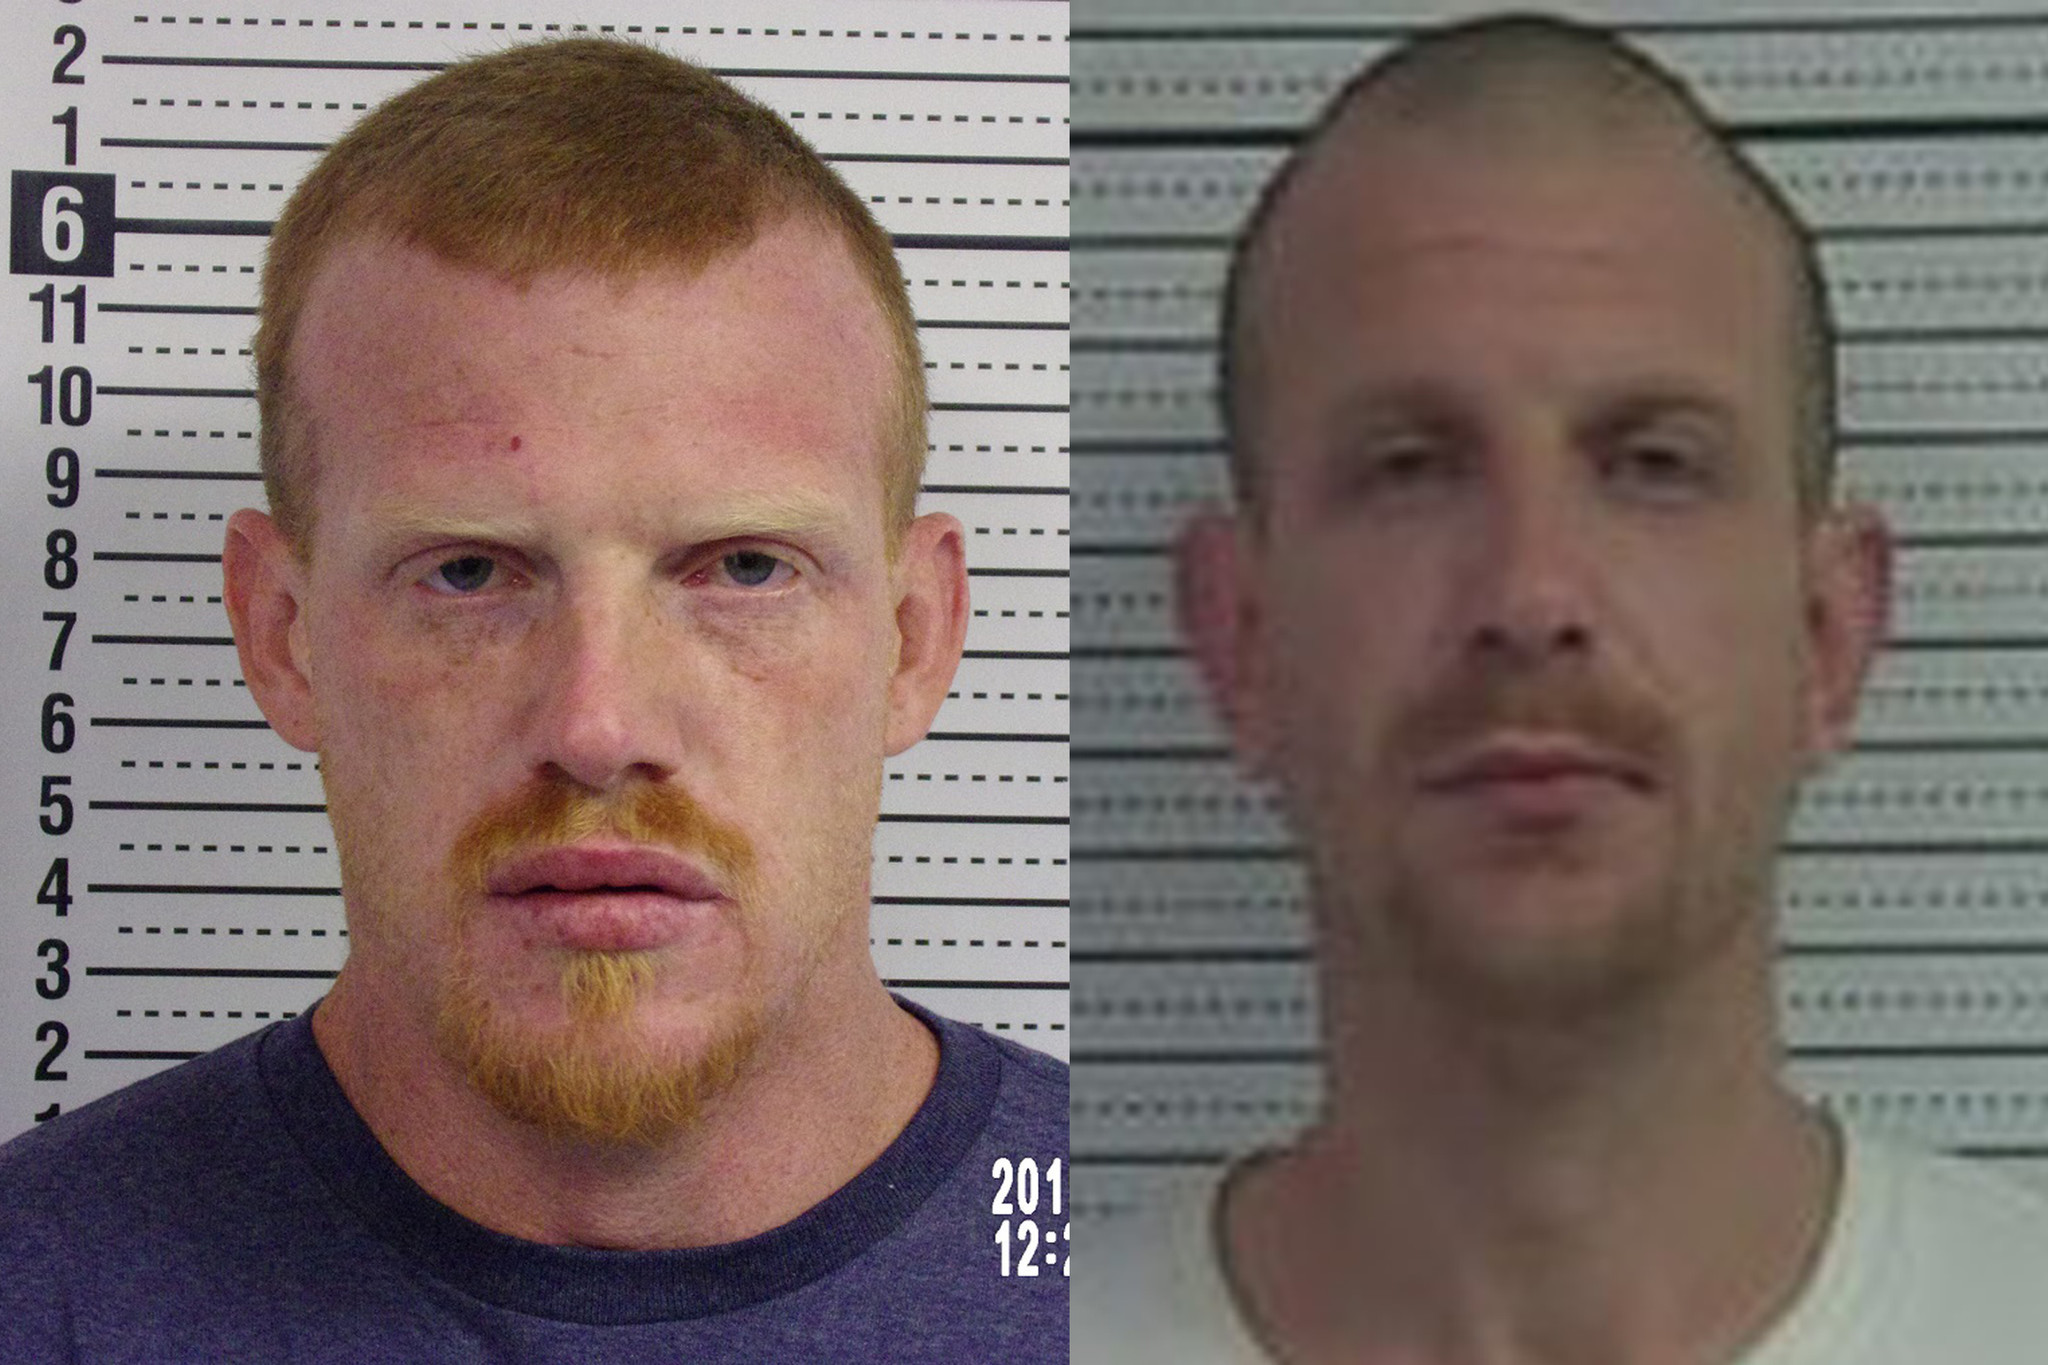 Kansas man in stolen car busted while going to post bail for brother busted with stolen car